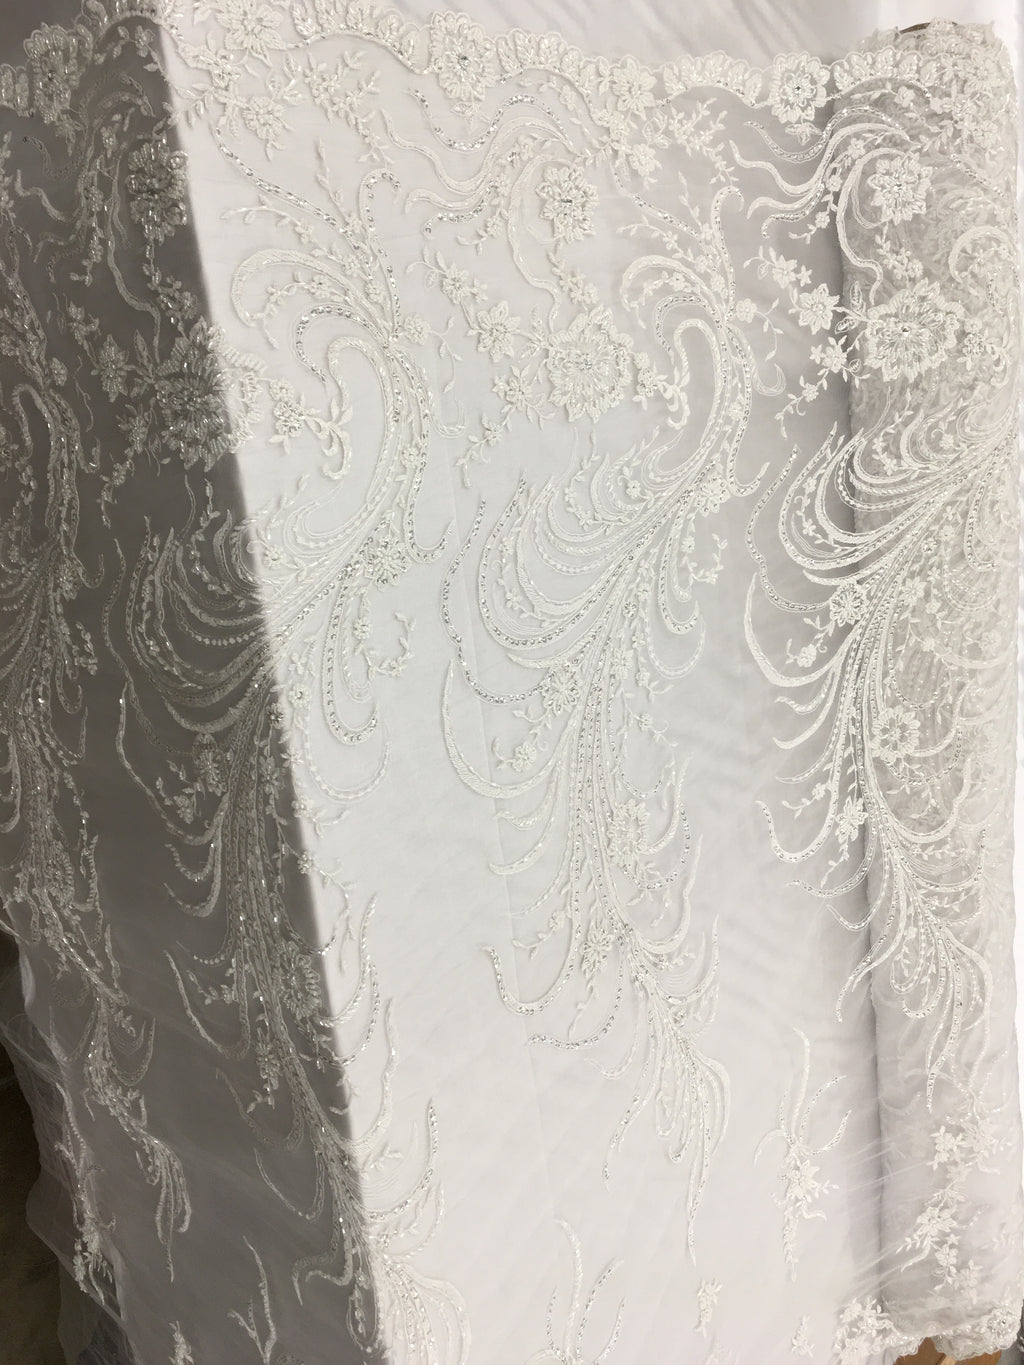 Rooster Tail Designs Bridal Beaded Fabric By The Yard White Lace Heavy Beads For Bridal Veil Flower Mesh Dress Top Wedding Decoration